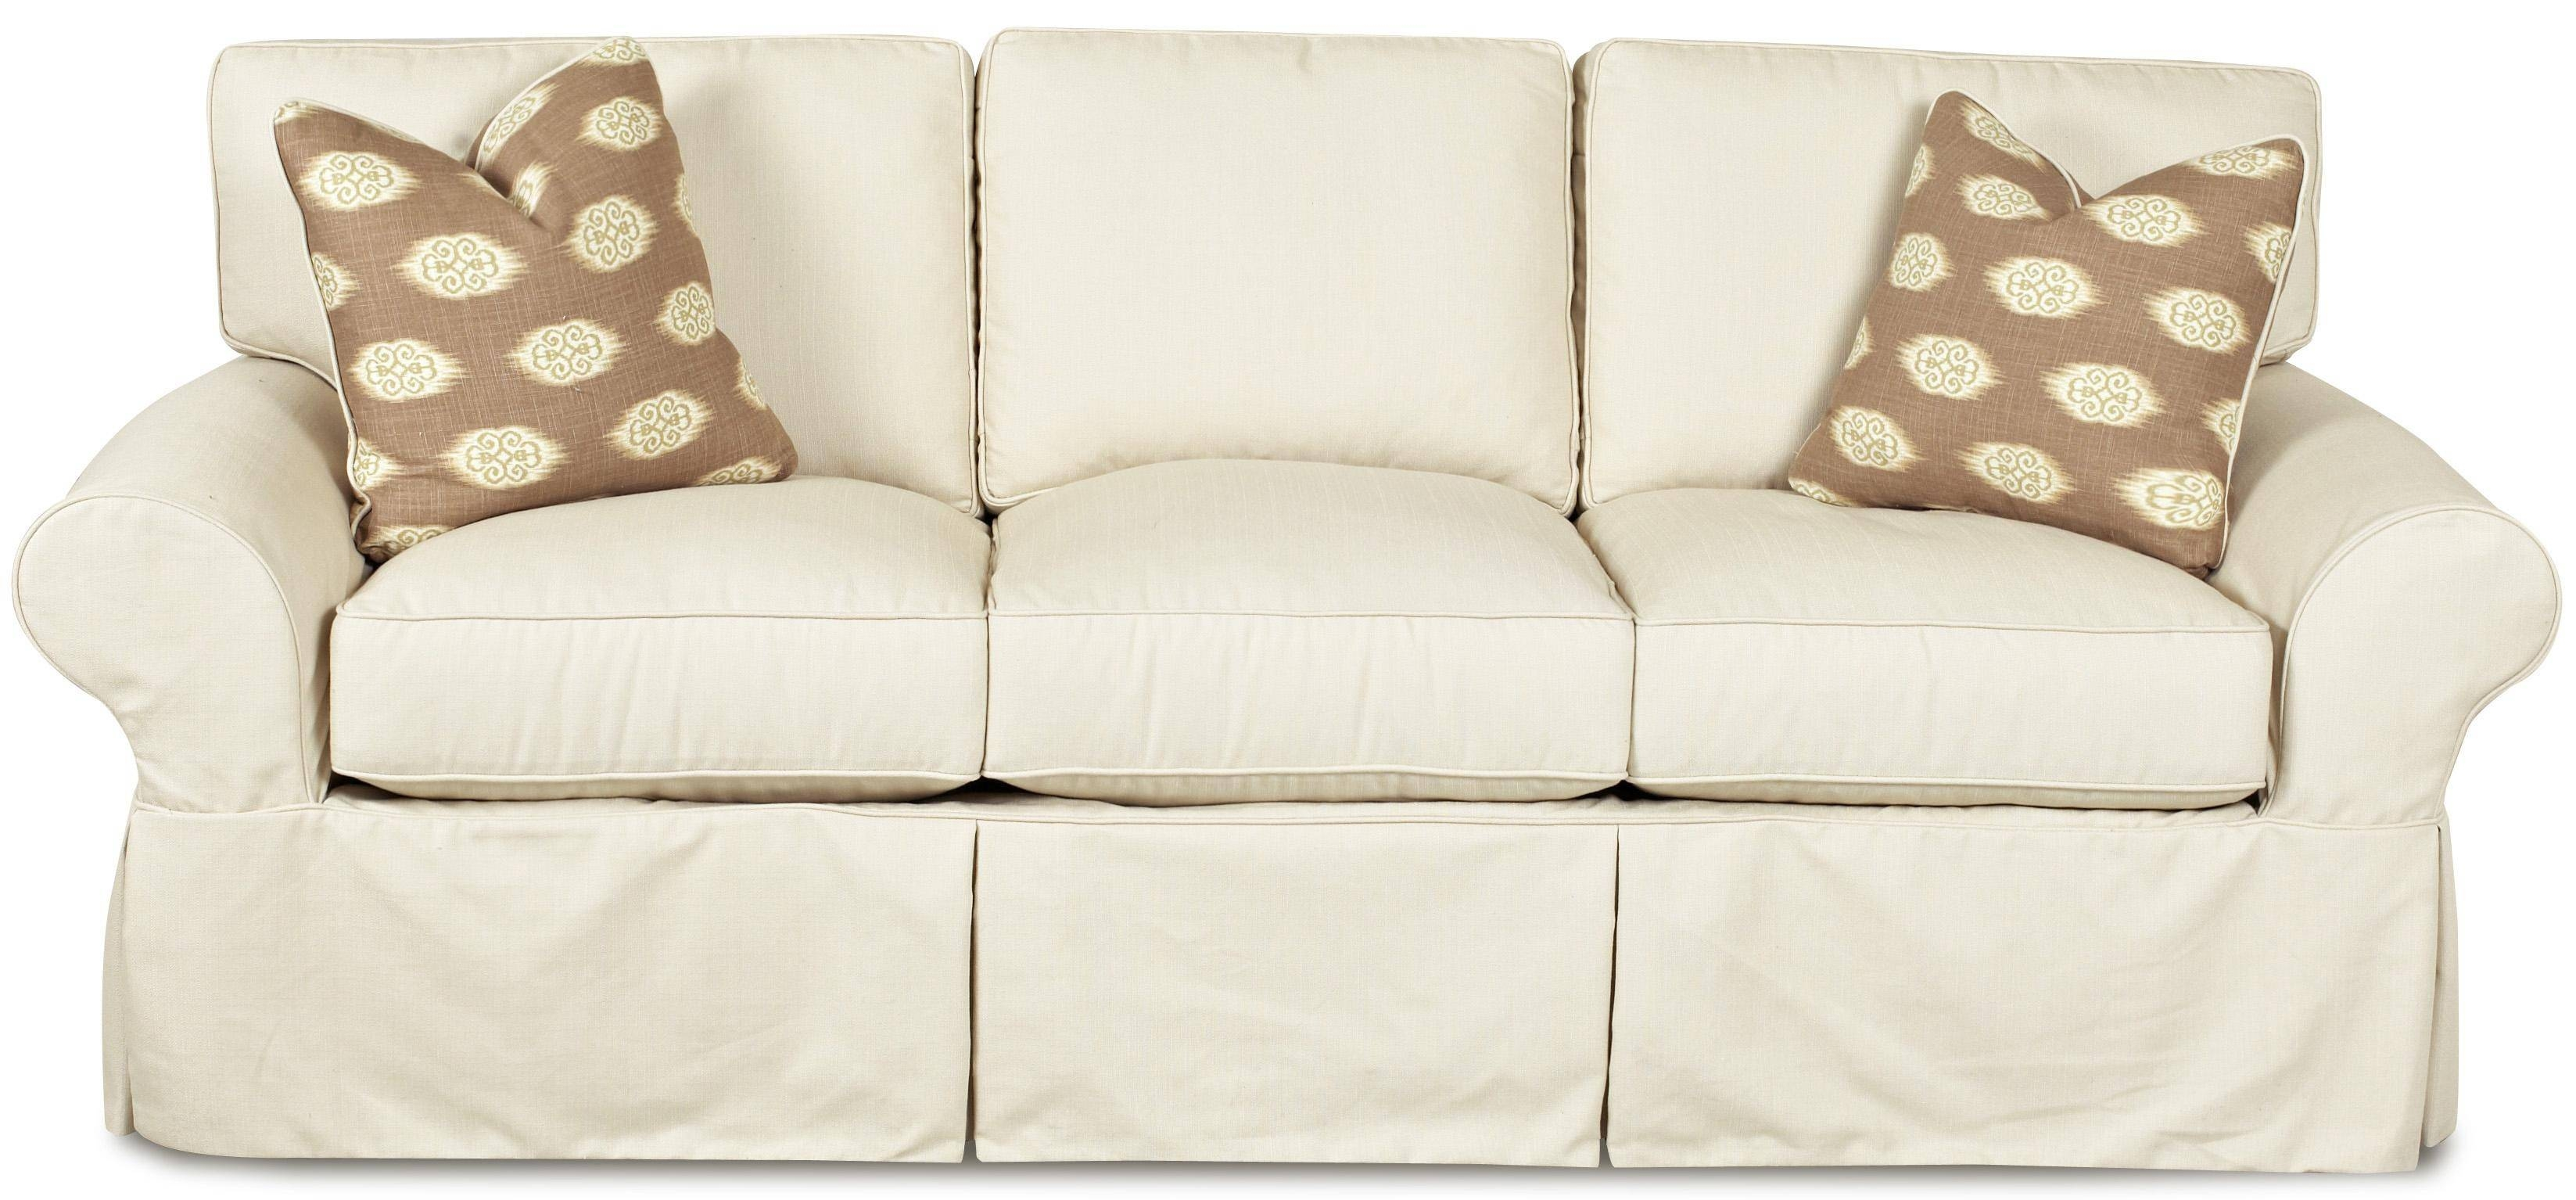 Chair & Sofa: Usual Slipcovered Sofas For Classic Sofa Idea regarding Slipcovers For Chairs And Sofas (Image 2 of 15)